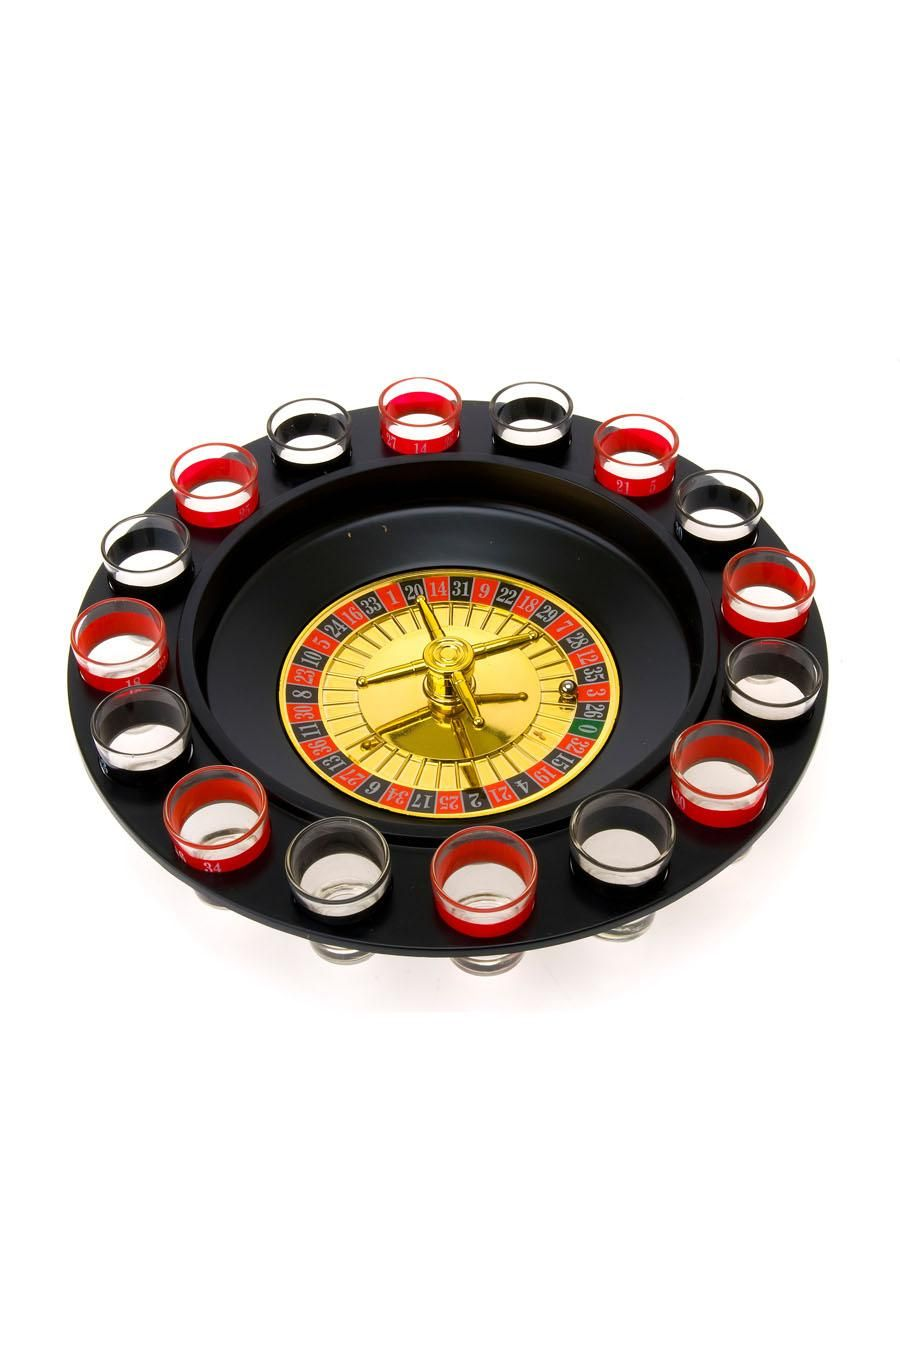 Wanted Drinking Roulette Game Including 16 Shot Glasses